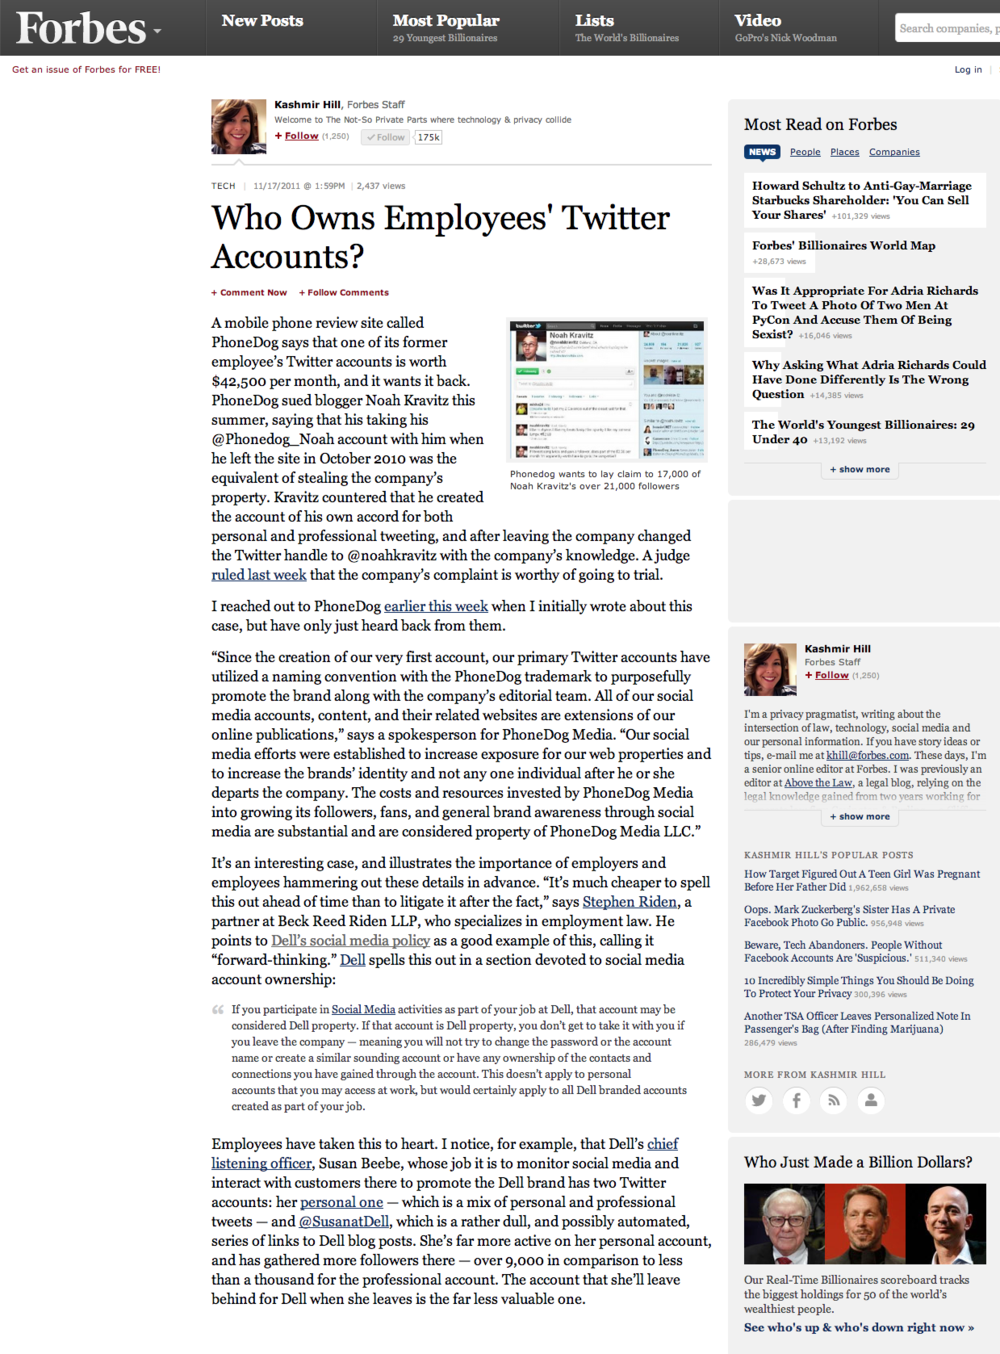 Forbes - Who owns employee twitter accounts?